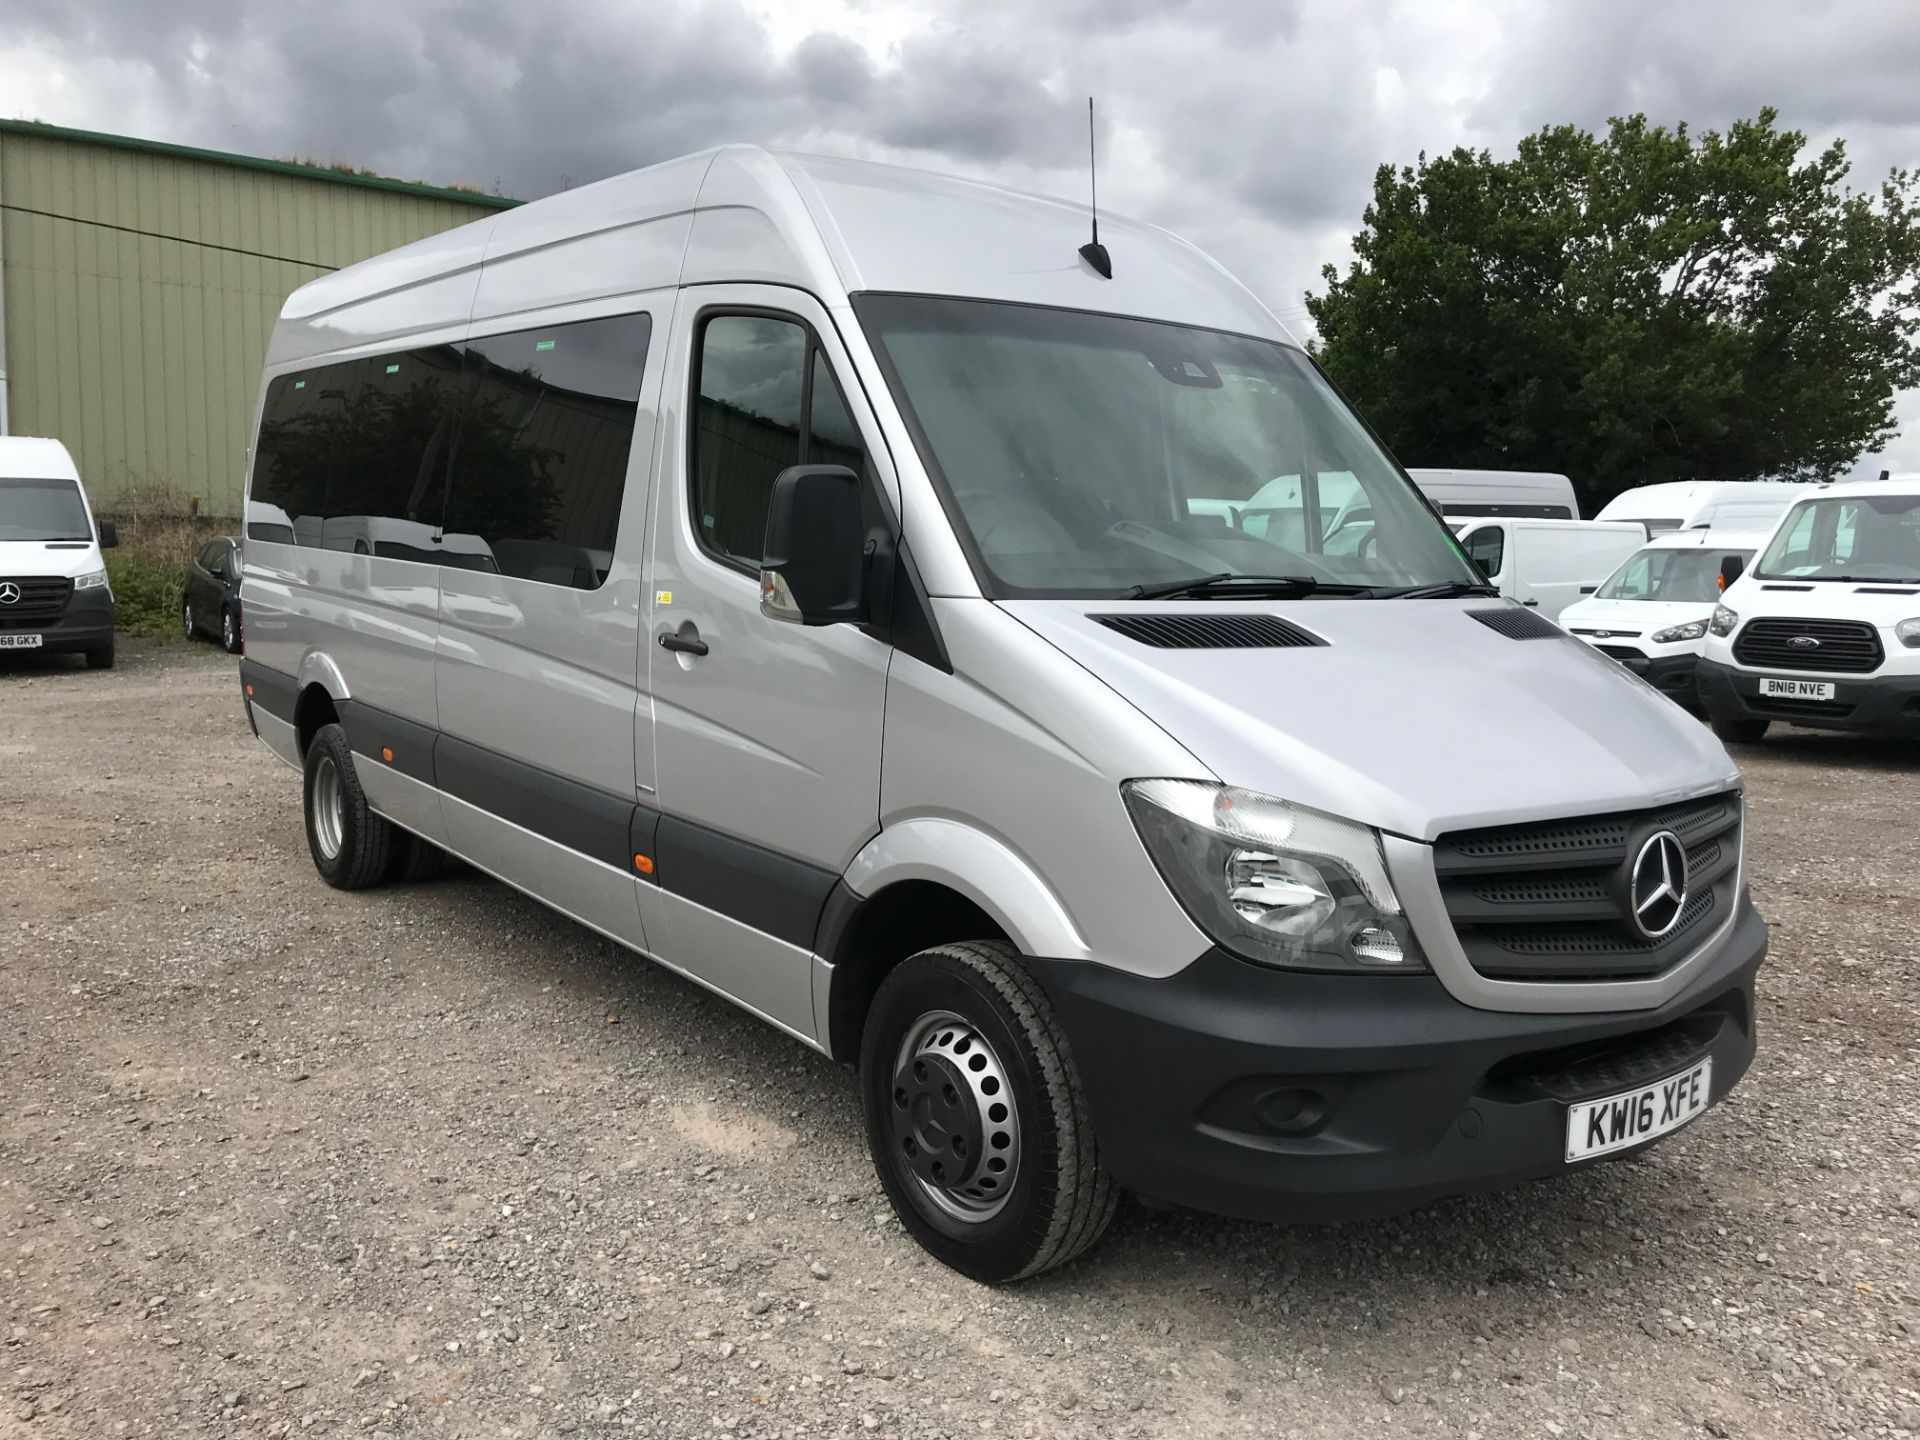 2016 Mercedes-Benz Sprinter 516Cdi Bluetec Blueeff Tl17 17-Seater High Roof (KW16XFE)